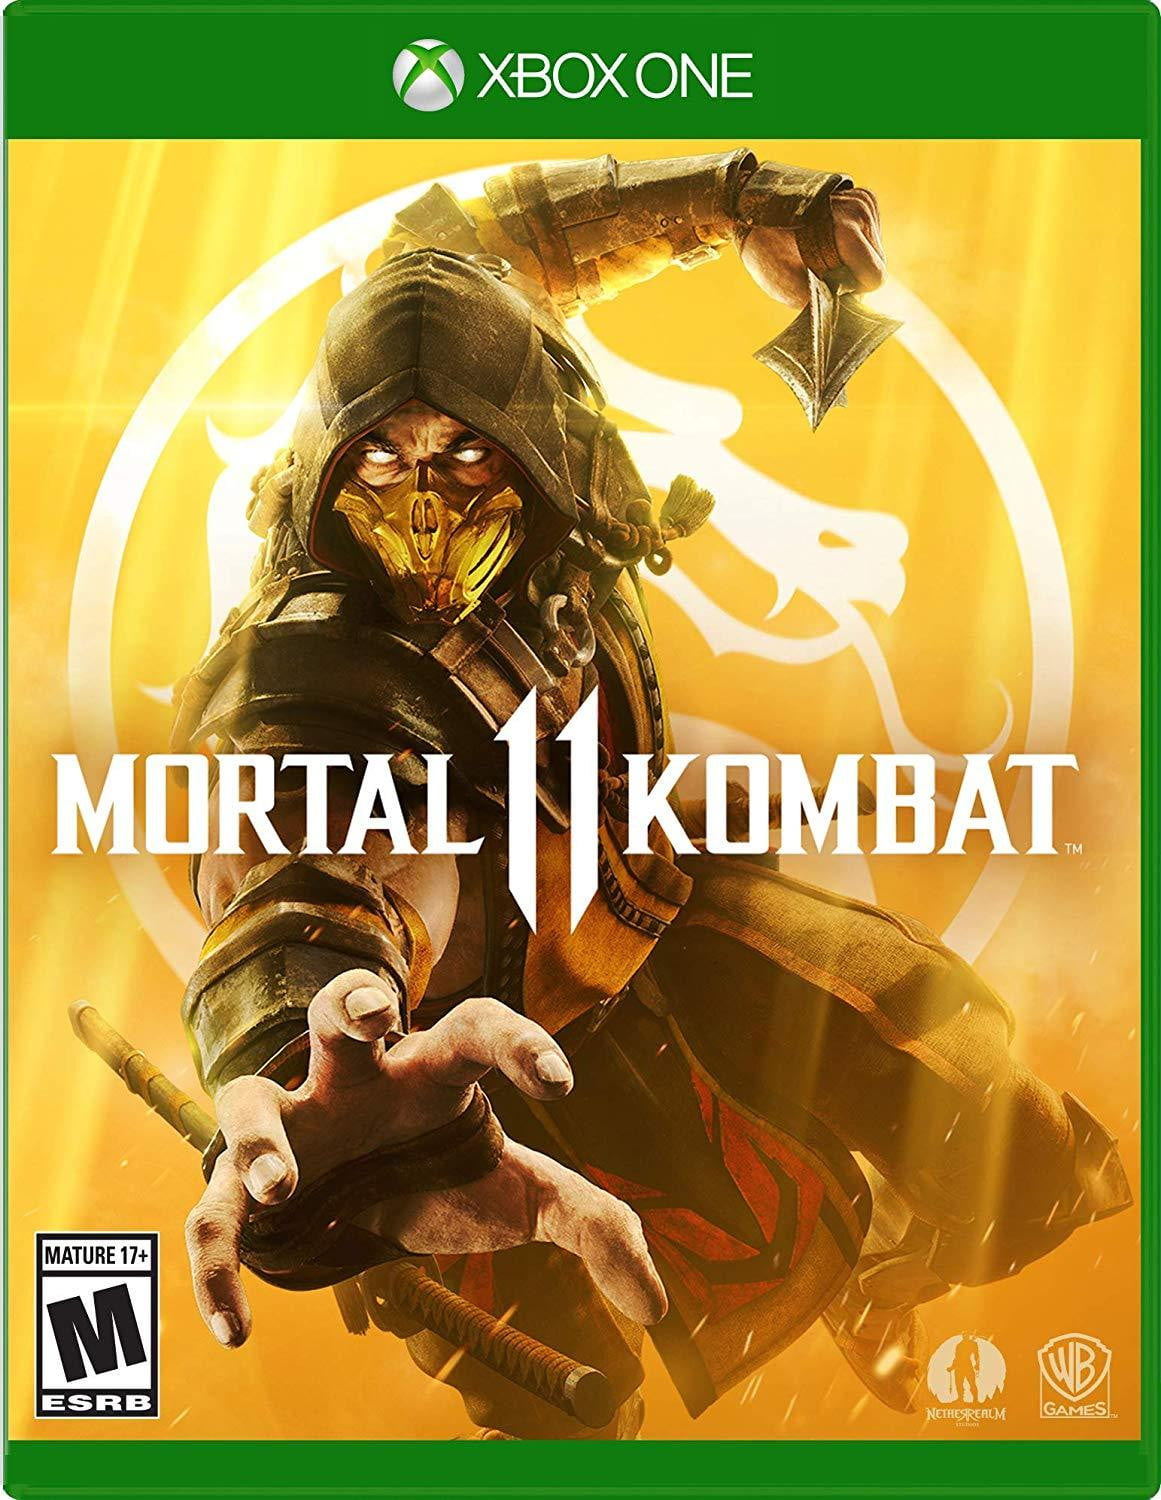 Buy Mortal Kombat 11 (XBOX ONE) XBOX ONE in Egypt - Shamy Stores